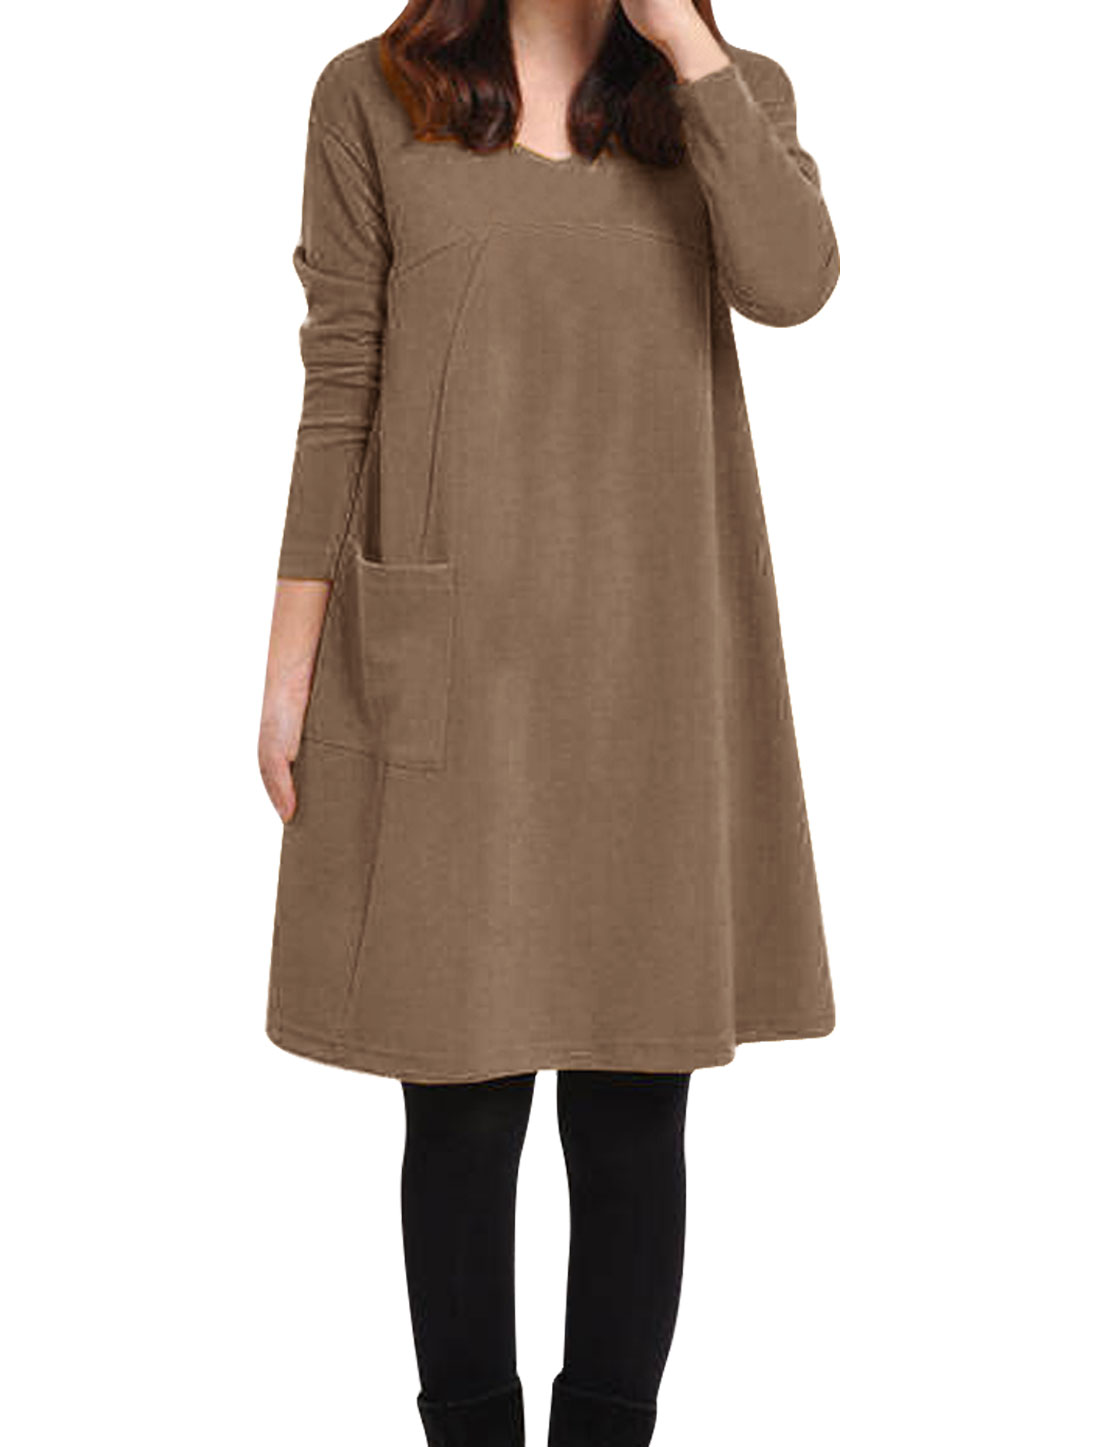 Women Soft V Neck Long Sleeve One Big Pocket Tunic Dress Brown S